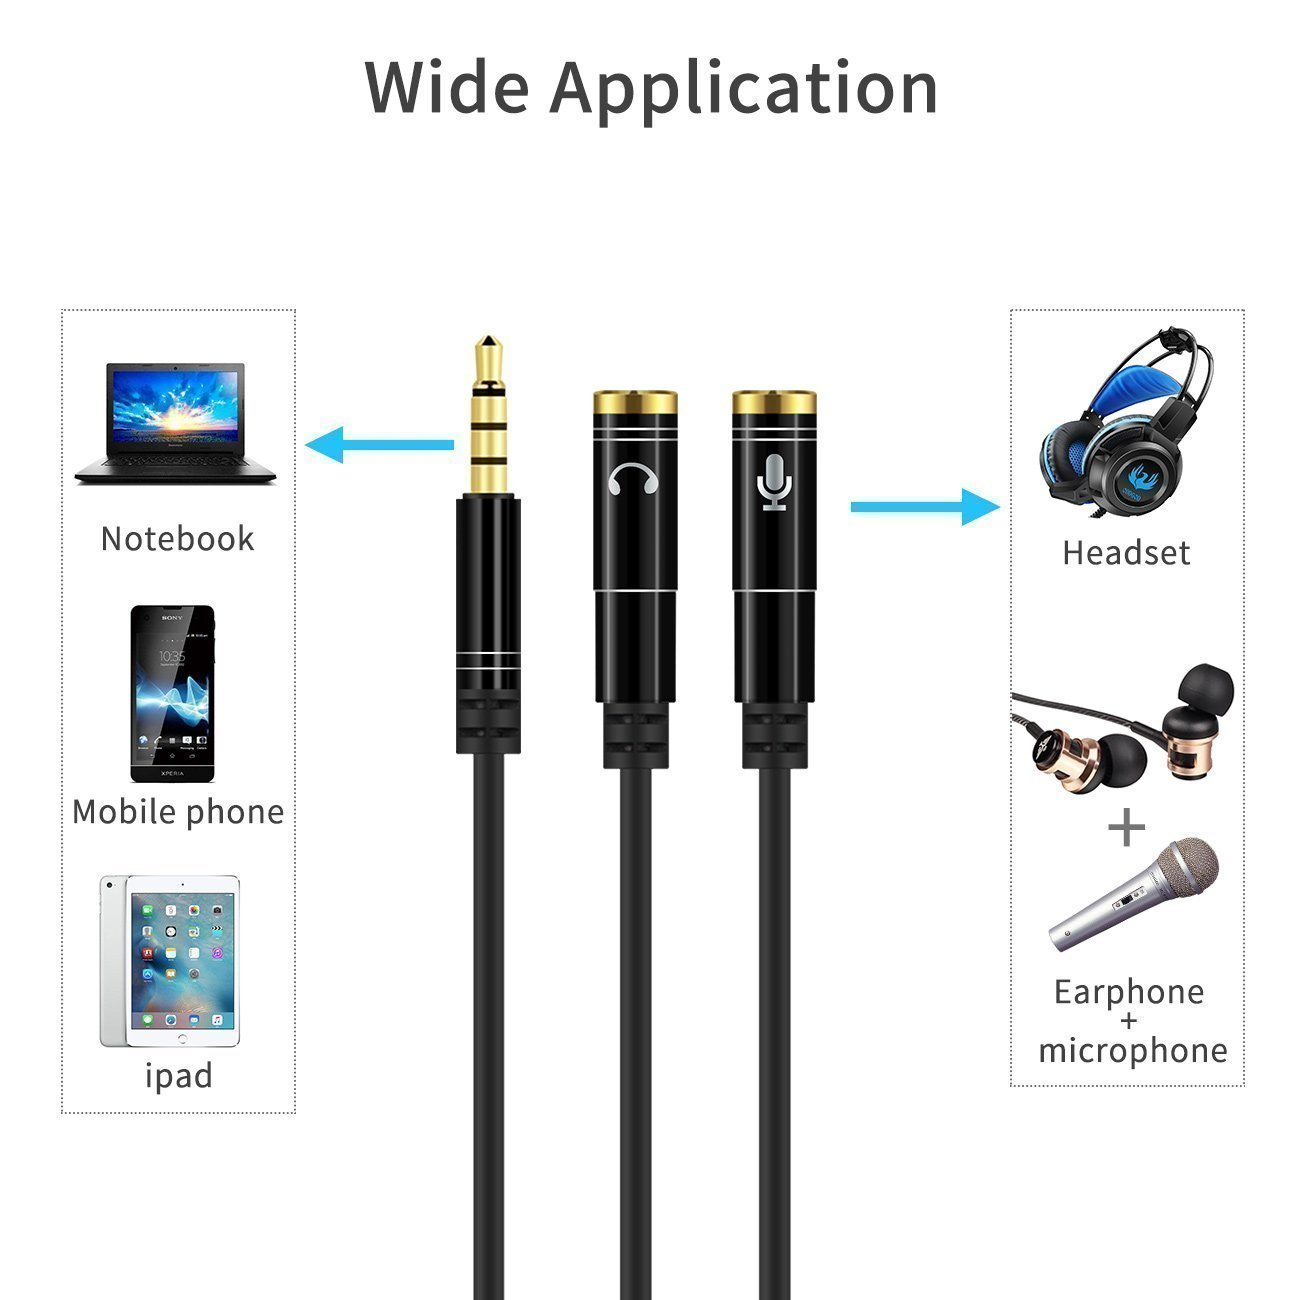 Dahsha Gold Plated 35mm Jack Headphone Mic Audio Y Splitter Cable 1 Laptop Out Circuit Diagram Legth 30cm Turning A Single 4 Pole Headset Port Into Two Female With Function Allow You To Connect An External Or